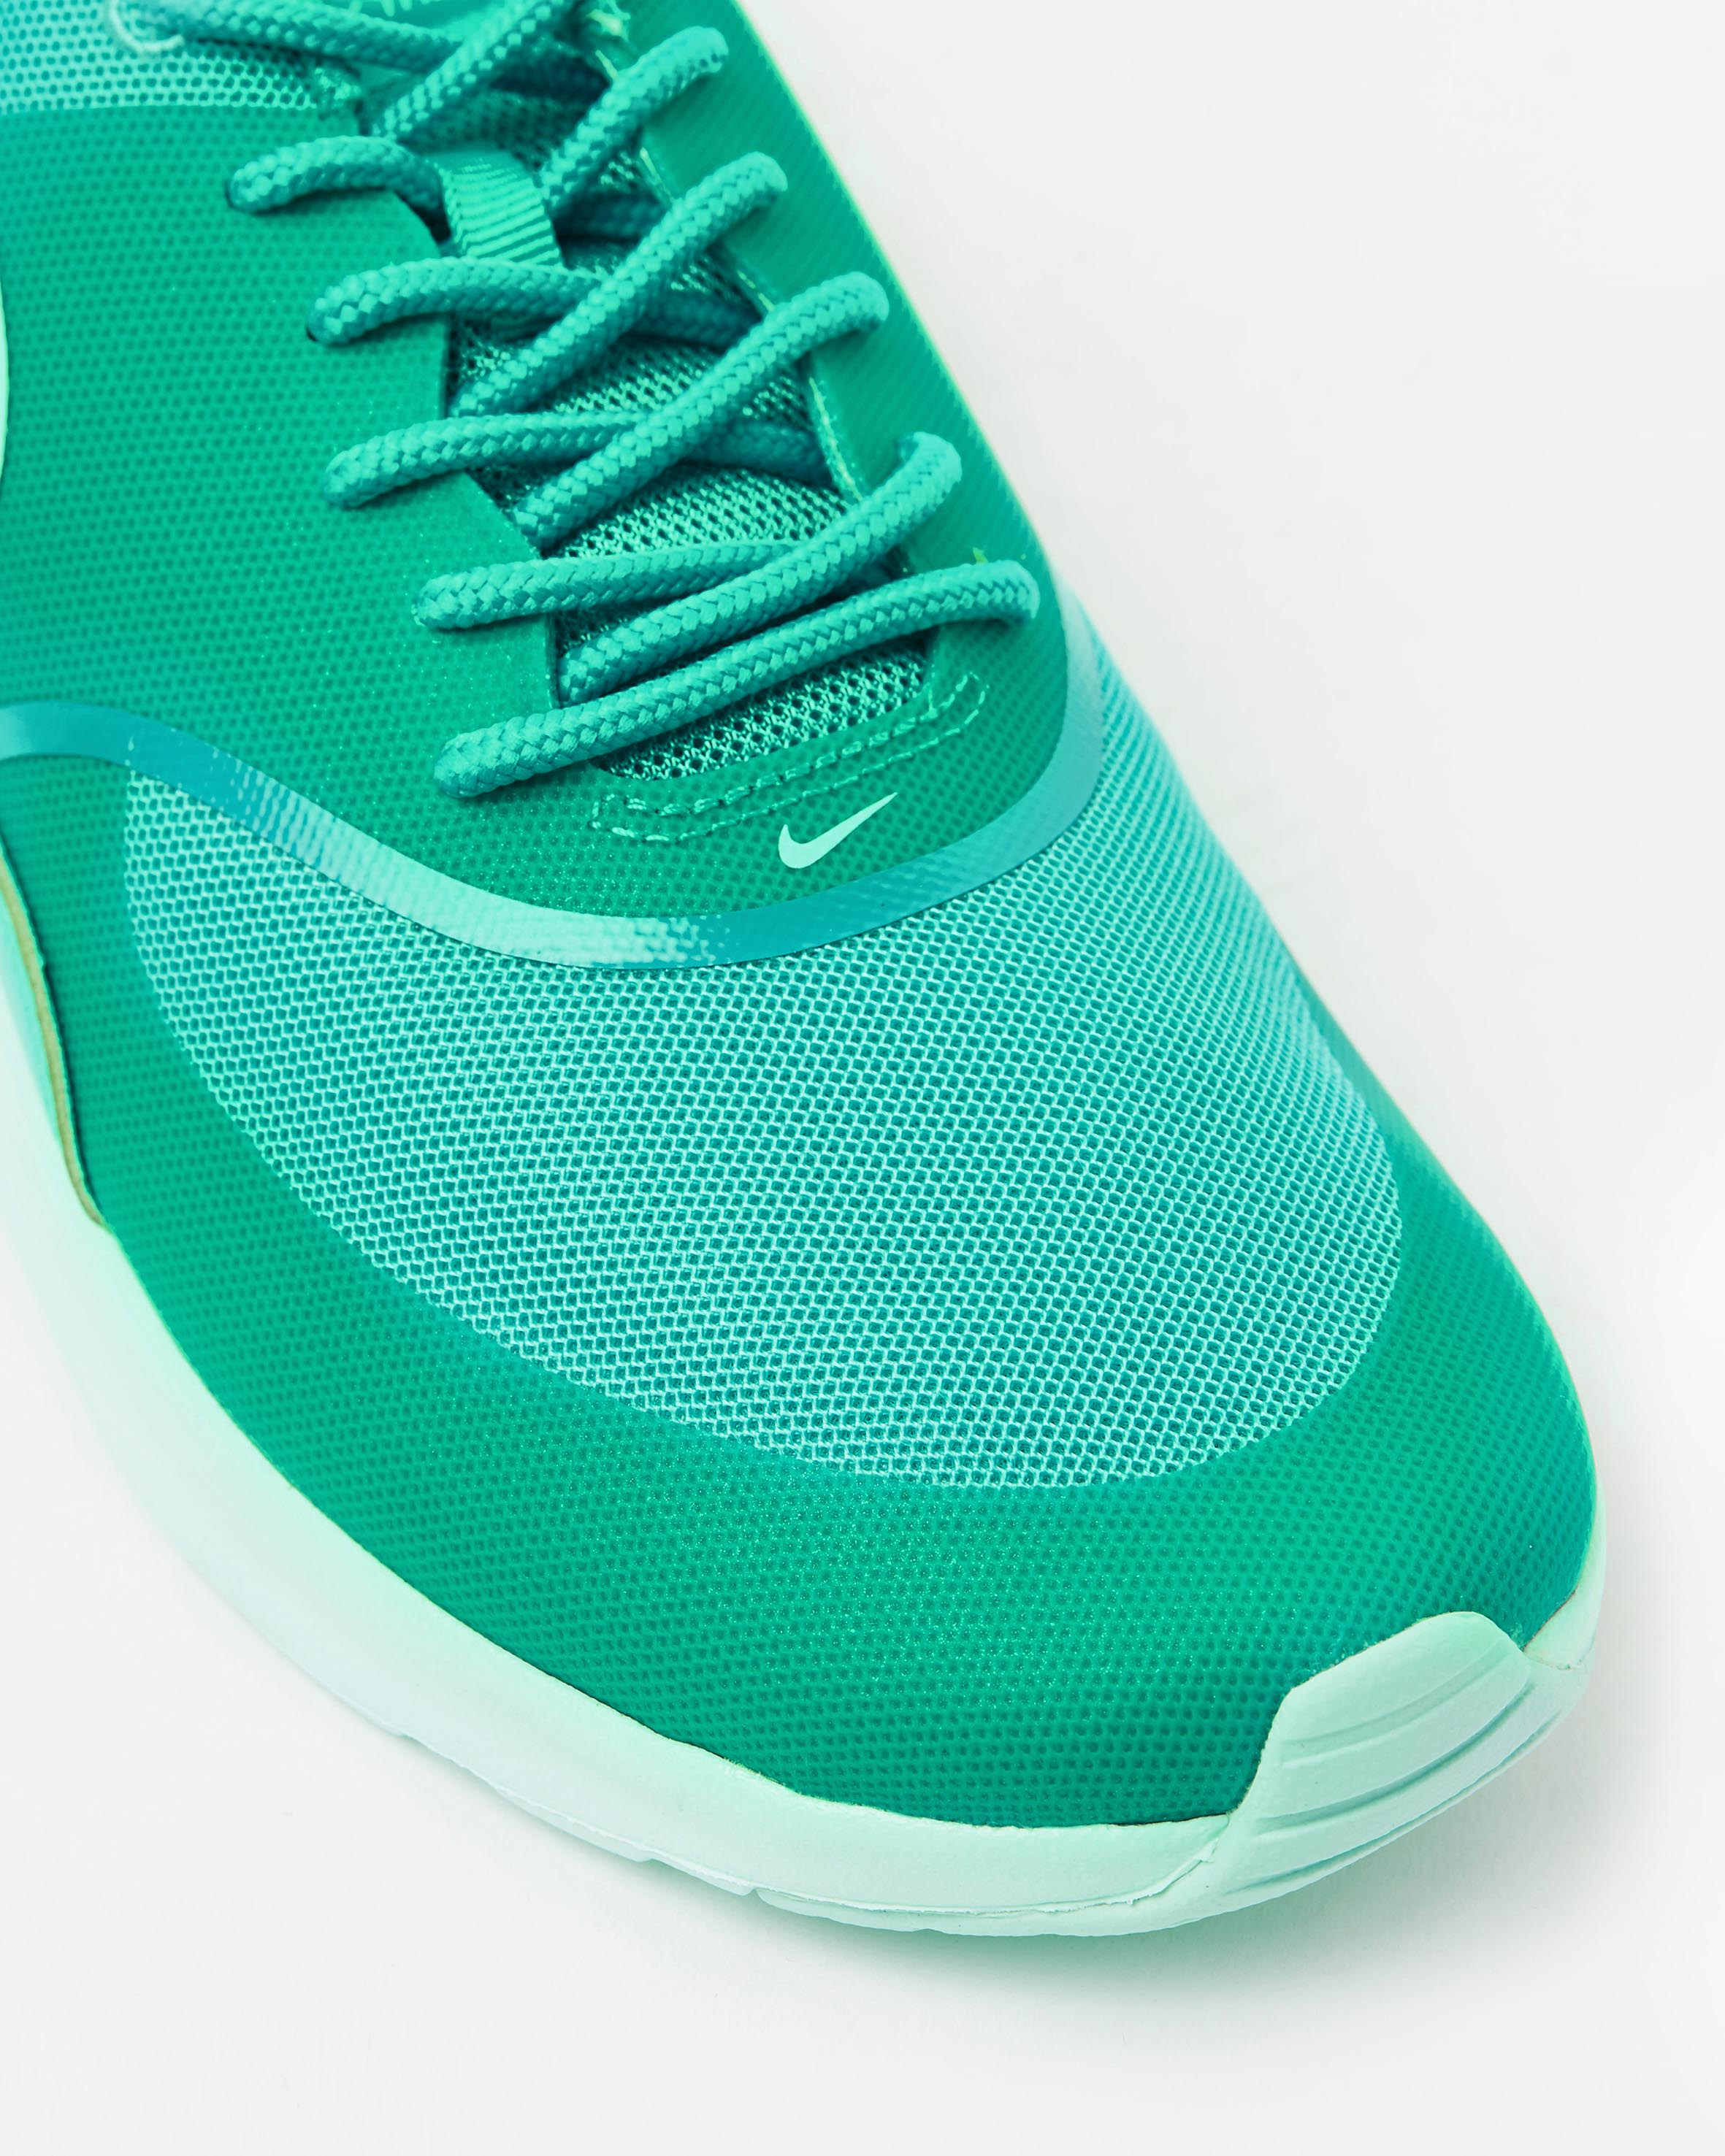 ... Nike Air Max Thea Light Retro Artisan Teal 4 83d53bf6f